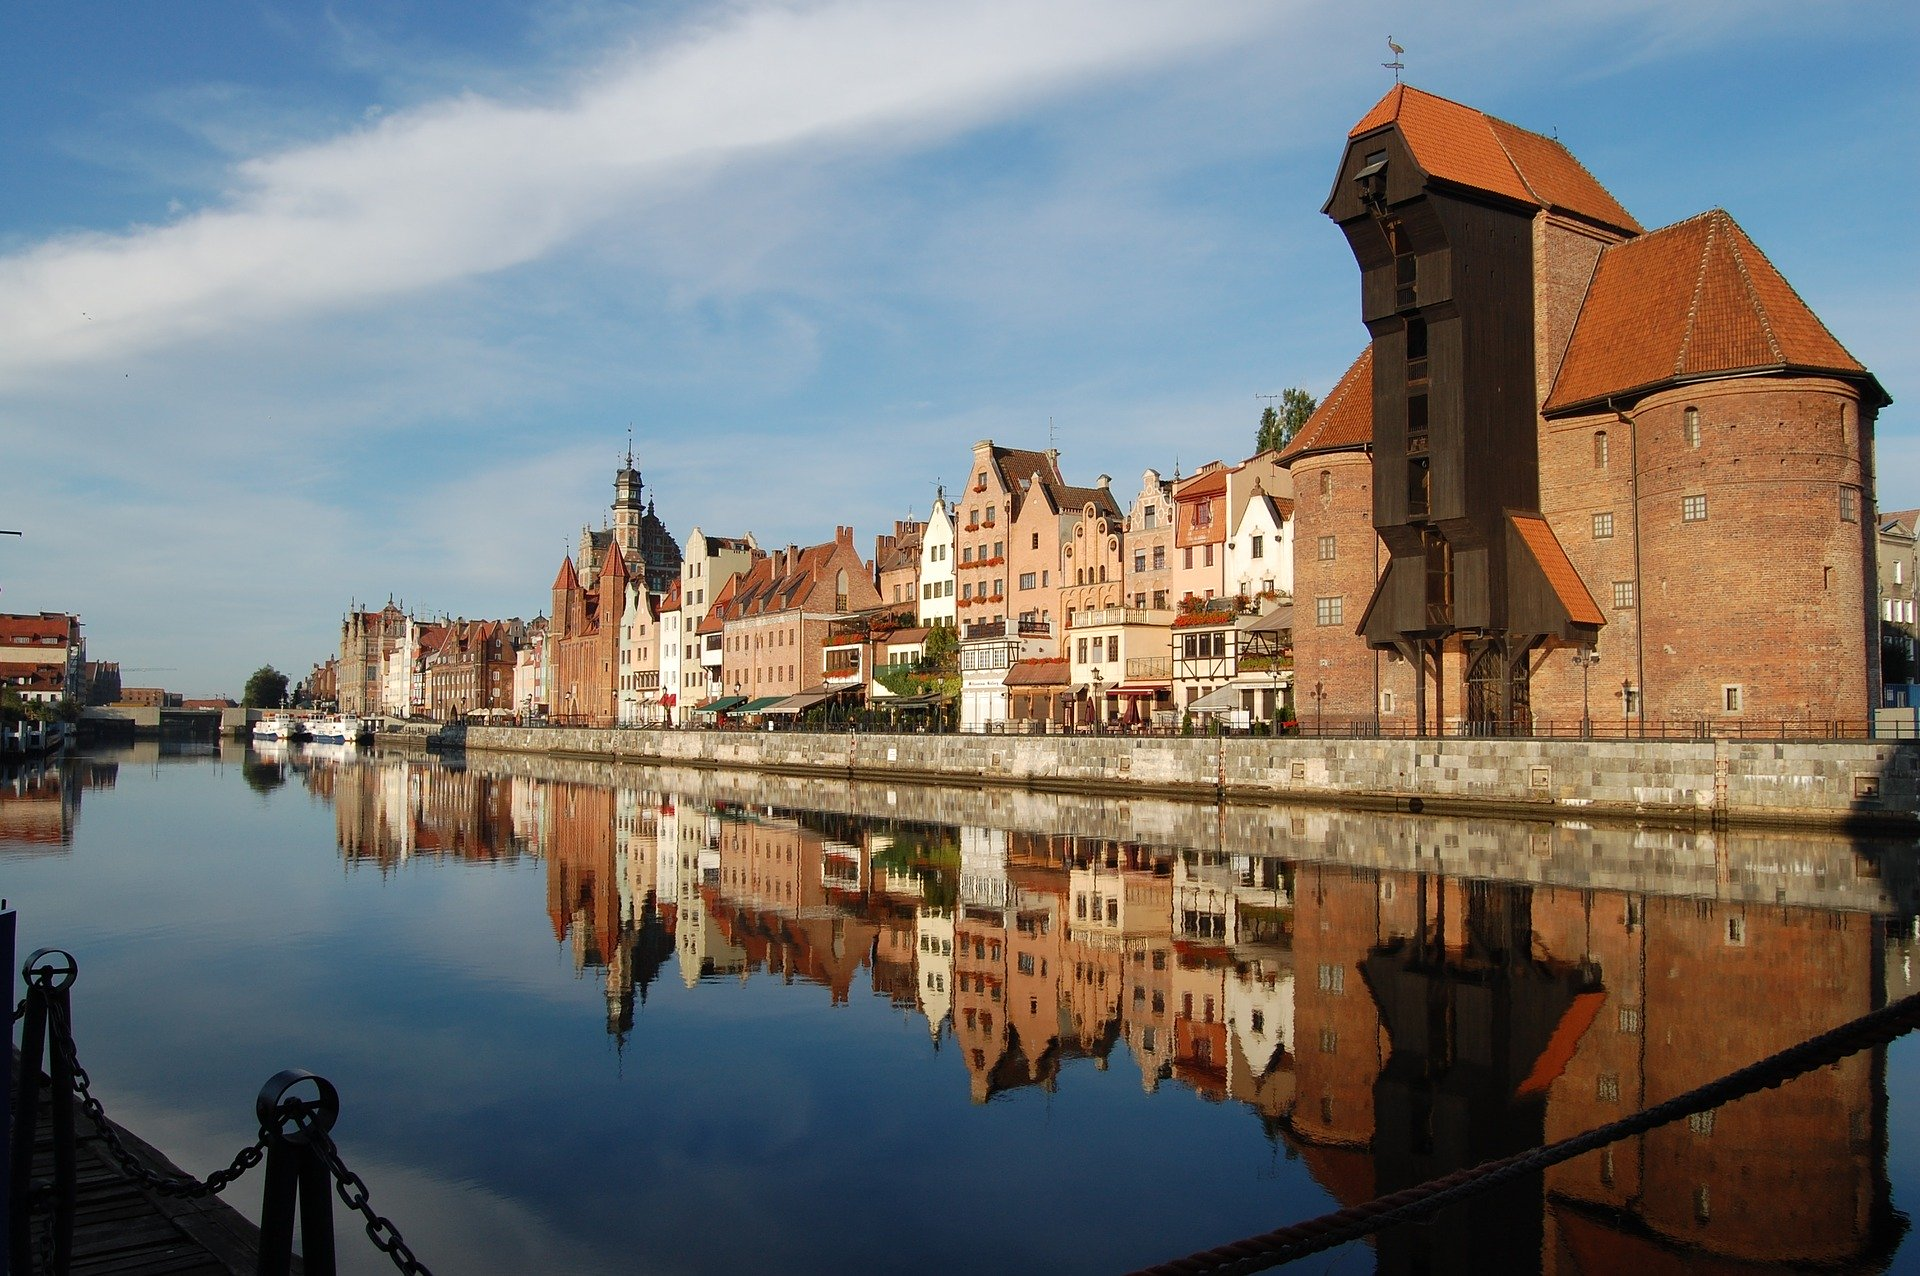 WEEKEND IN GDAŃSK